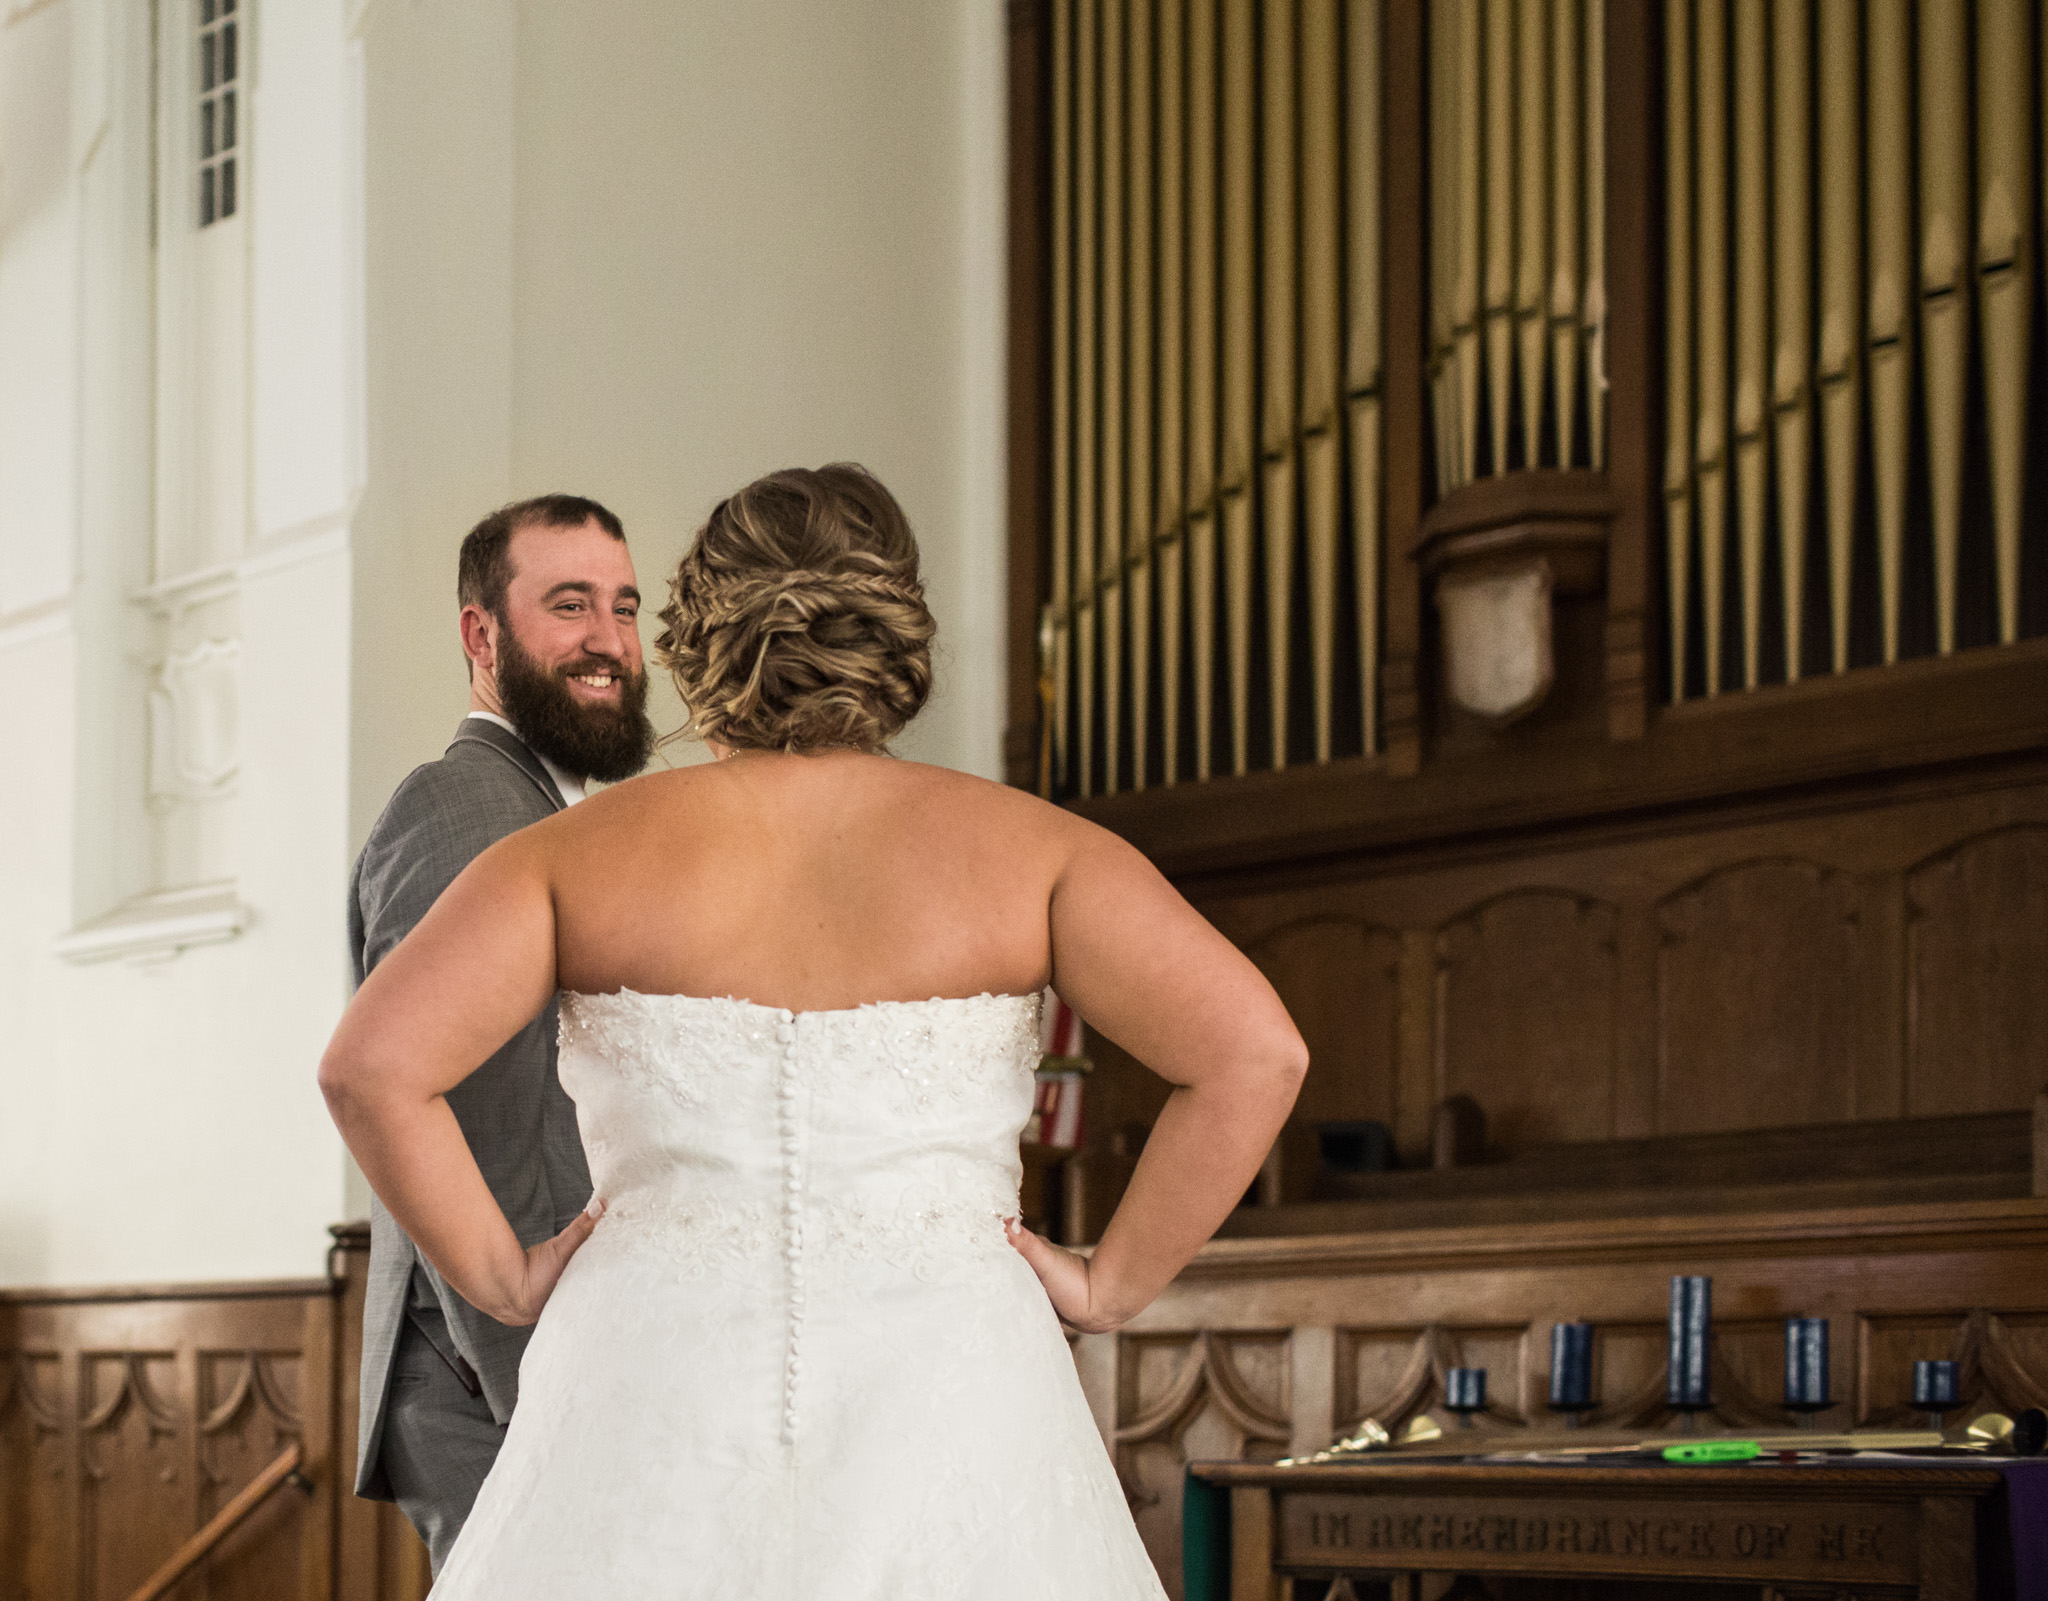 Zibell Spring Wedding, Bride and Groom, Powerful, Connected, Exploration, Laura Duggleby Photography -75.JPG